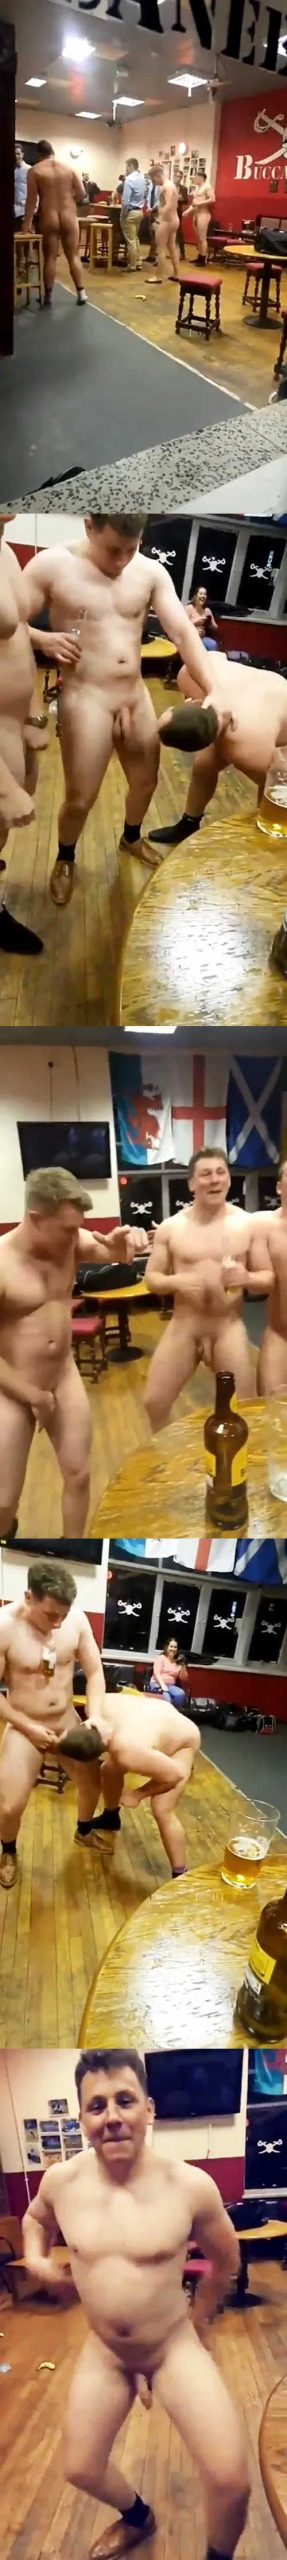 rugby lads naked in clubhouse